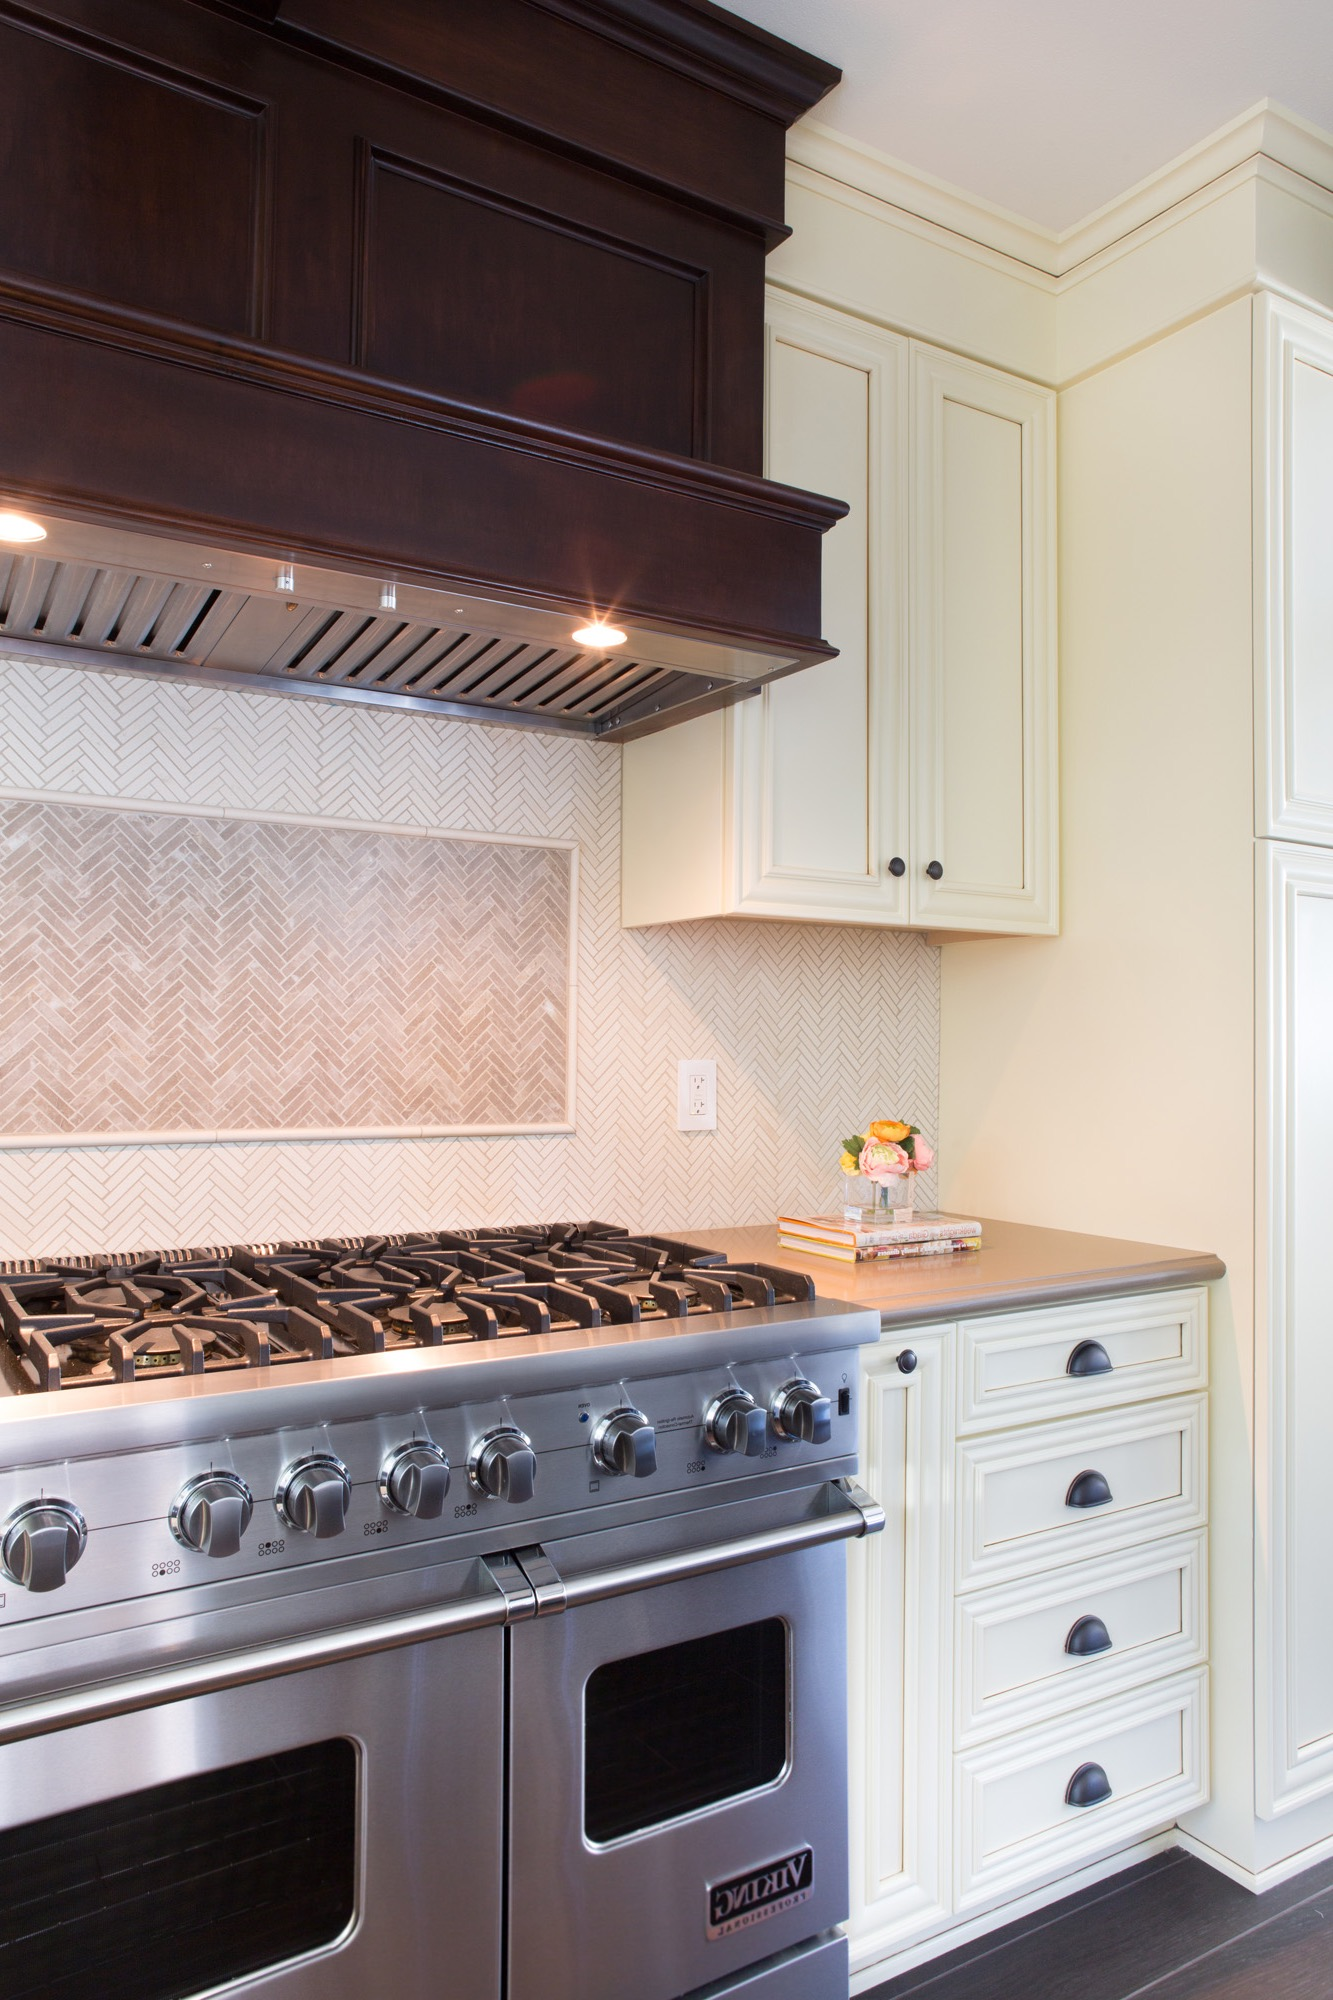 Muted Chevron Backsplash For Modern Kitchen (Image 25 of 32)